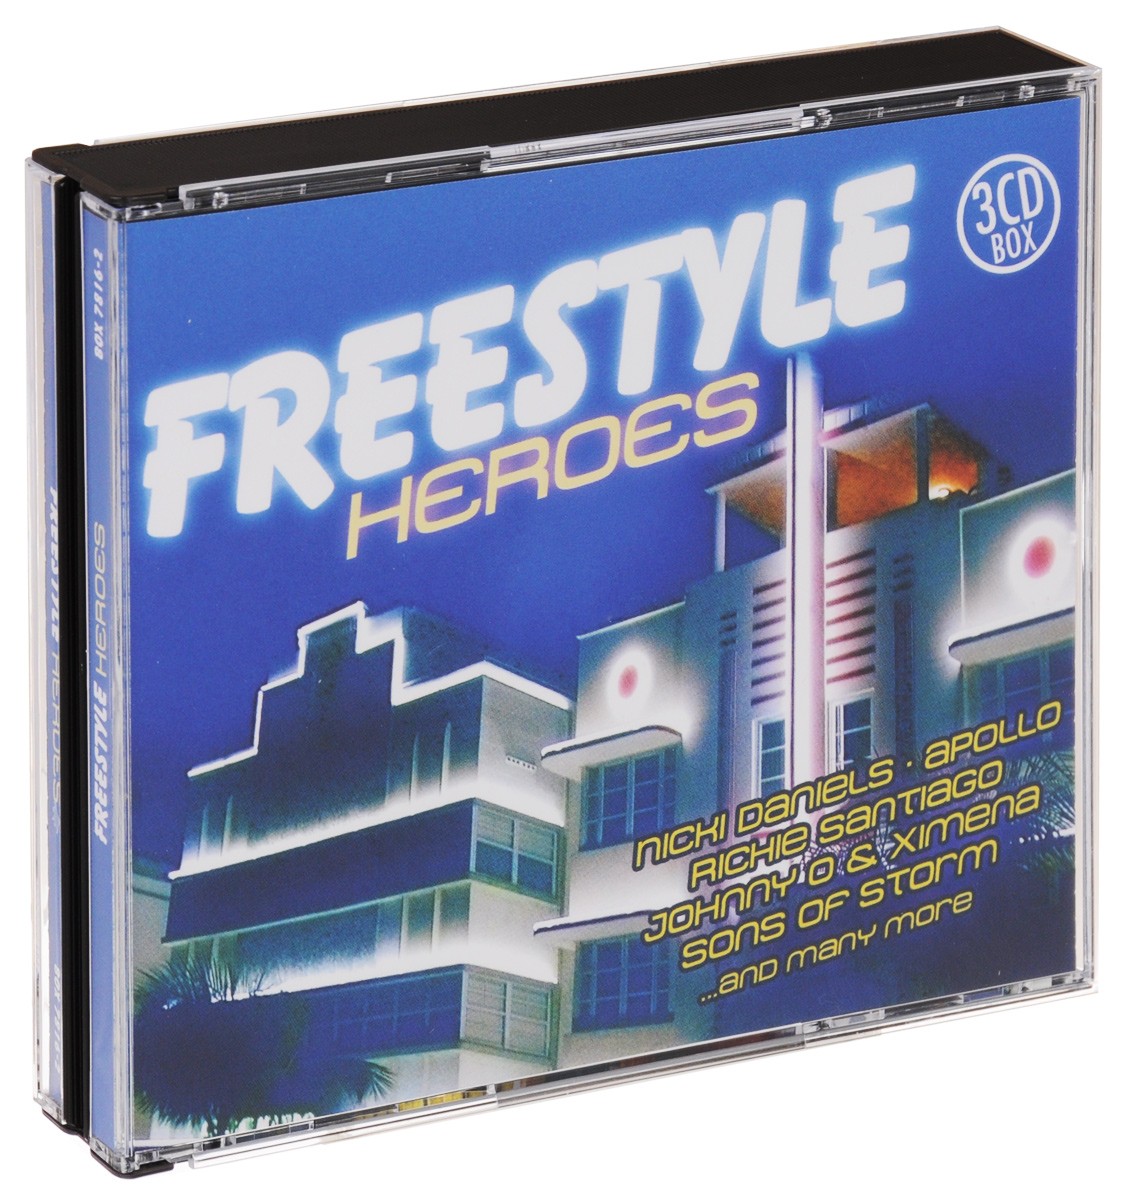 Freestyle Heroes (3 CD) johnny o rookie severin jayda soft touch лила грейс roxanna shineaz junior tiara suga mama x on jaylez maximnoise ники дэниэлс duap mc ричи сантьяго freestyle vol 40 best of final edition 3 cd